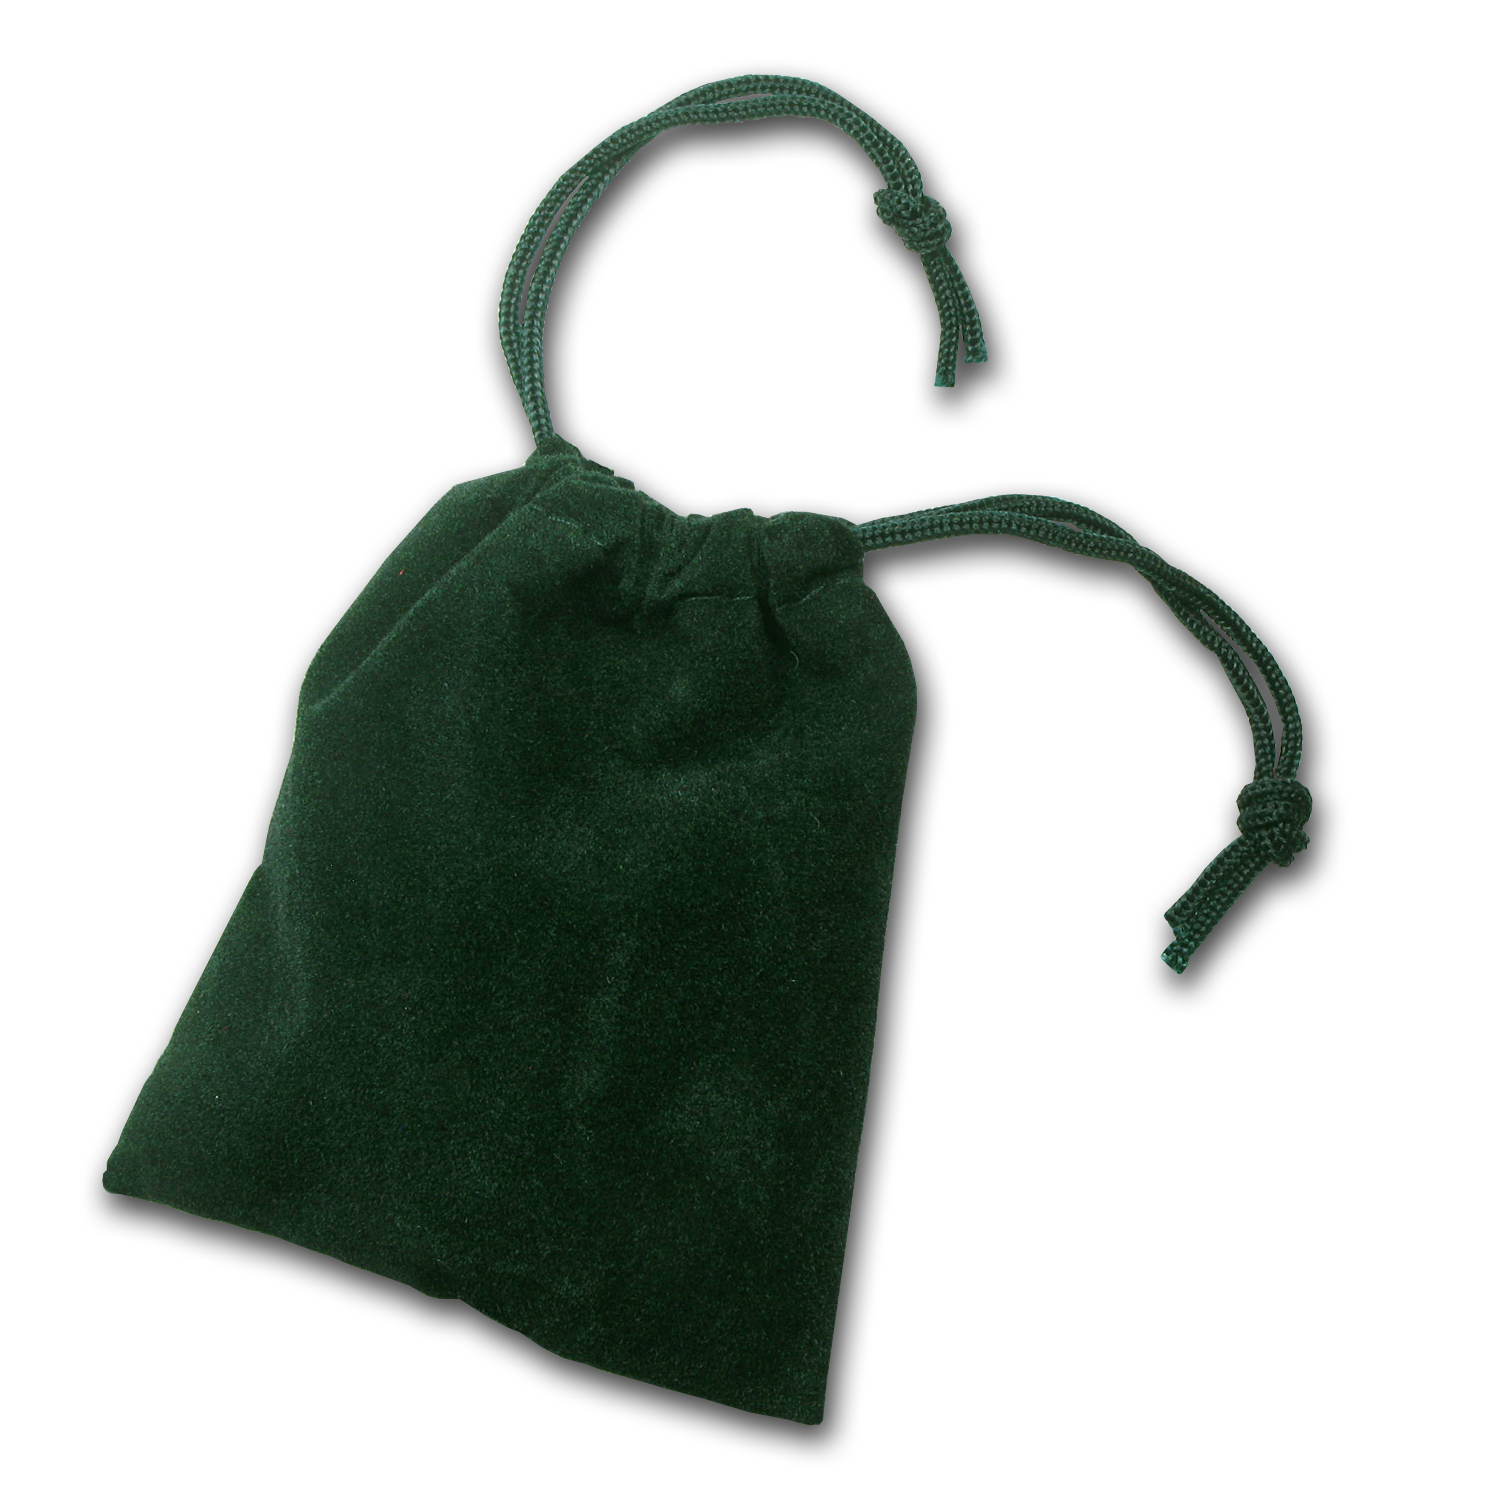 2.75 x 3 inch Velour Draw String Pouch - (Dark Green)